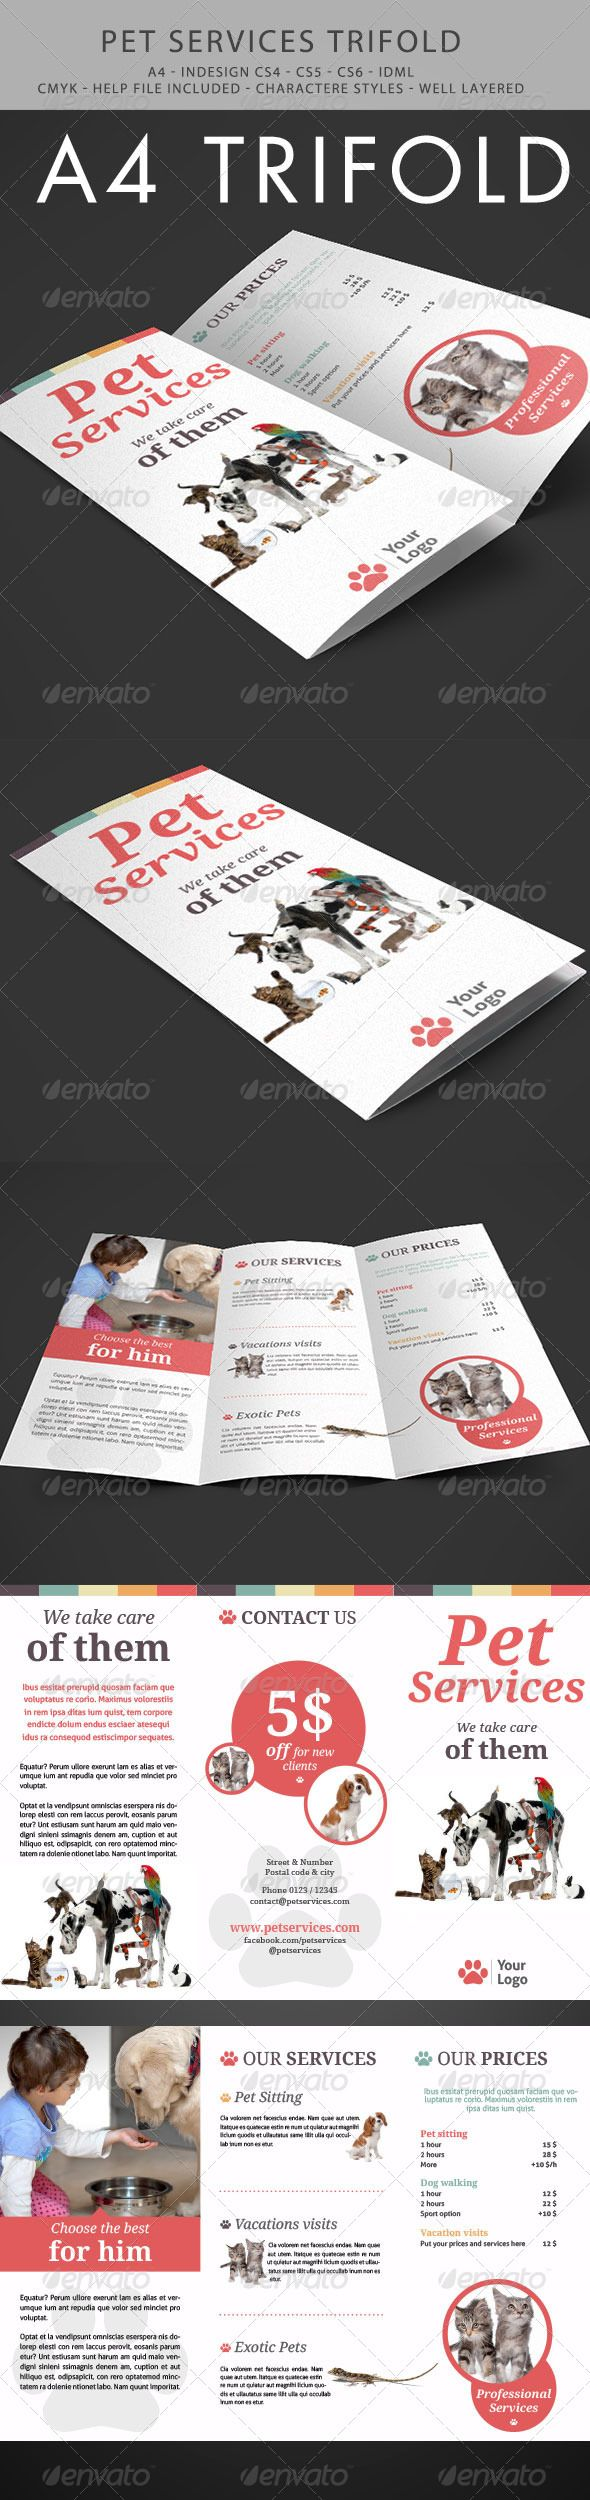 Amazing Pet Services Trifold InDesign Template • Only available here ➝ http://graphicriver.net/item/pet-services-trifold/6035992?ref=pxcr